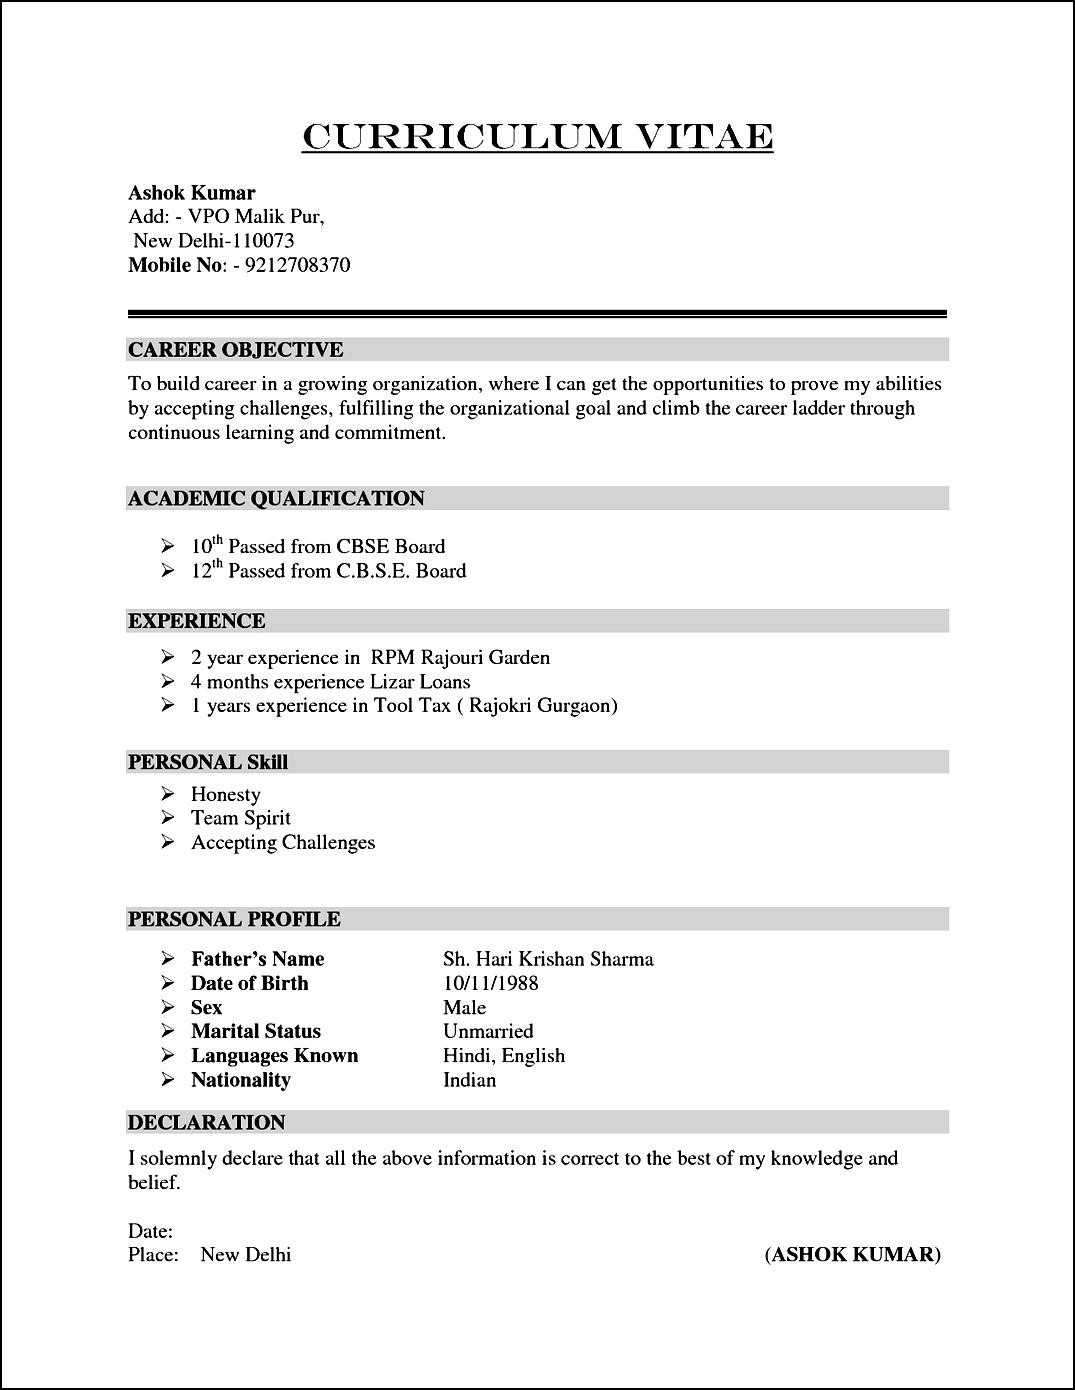 Sample Curriculum Vitae Format Free Samples Examples